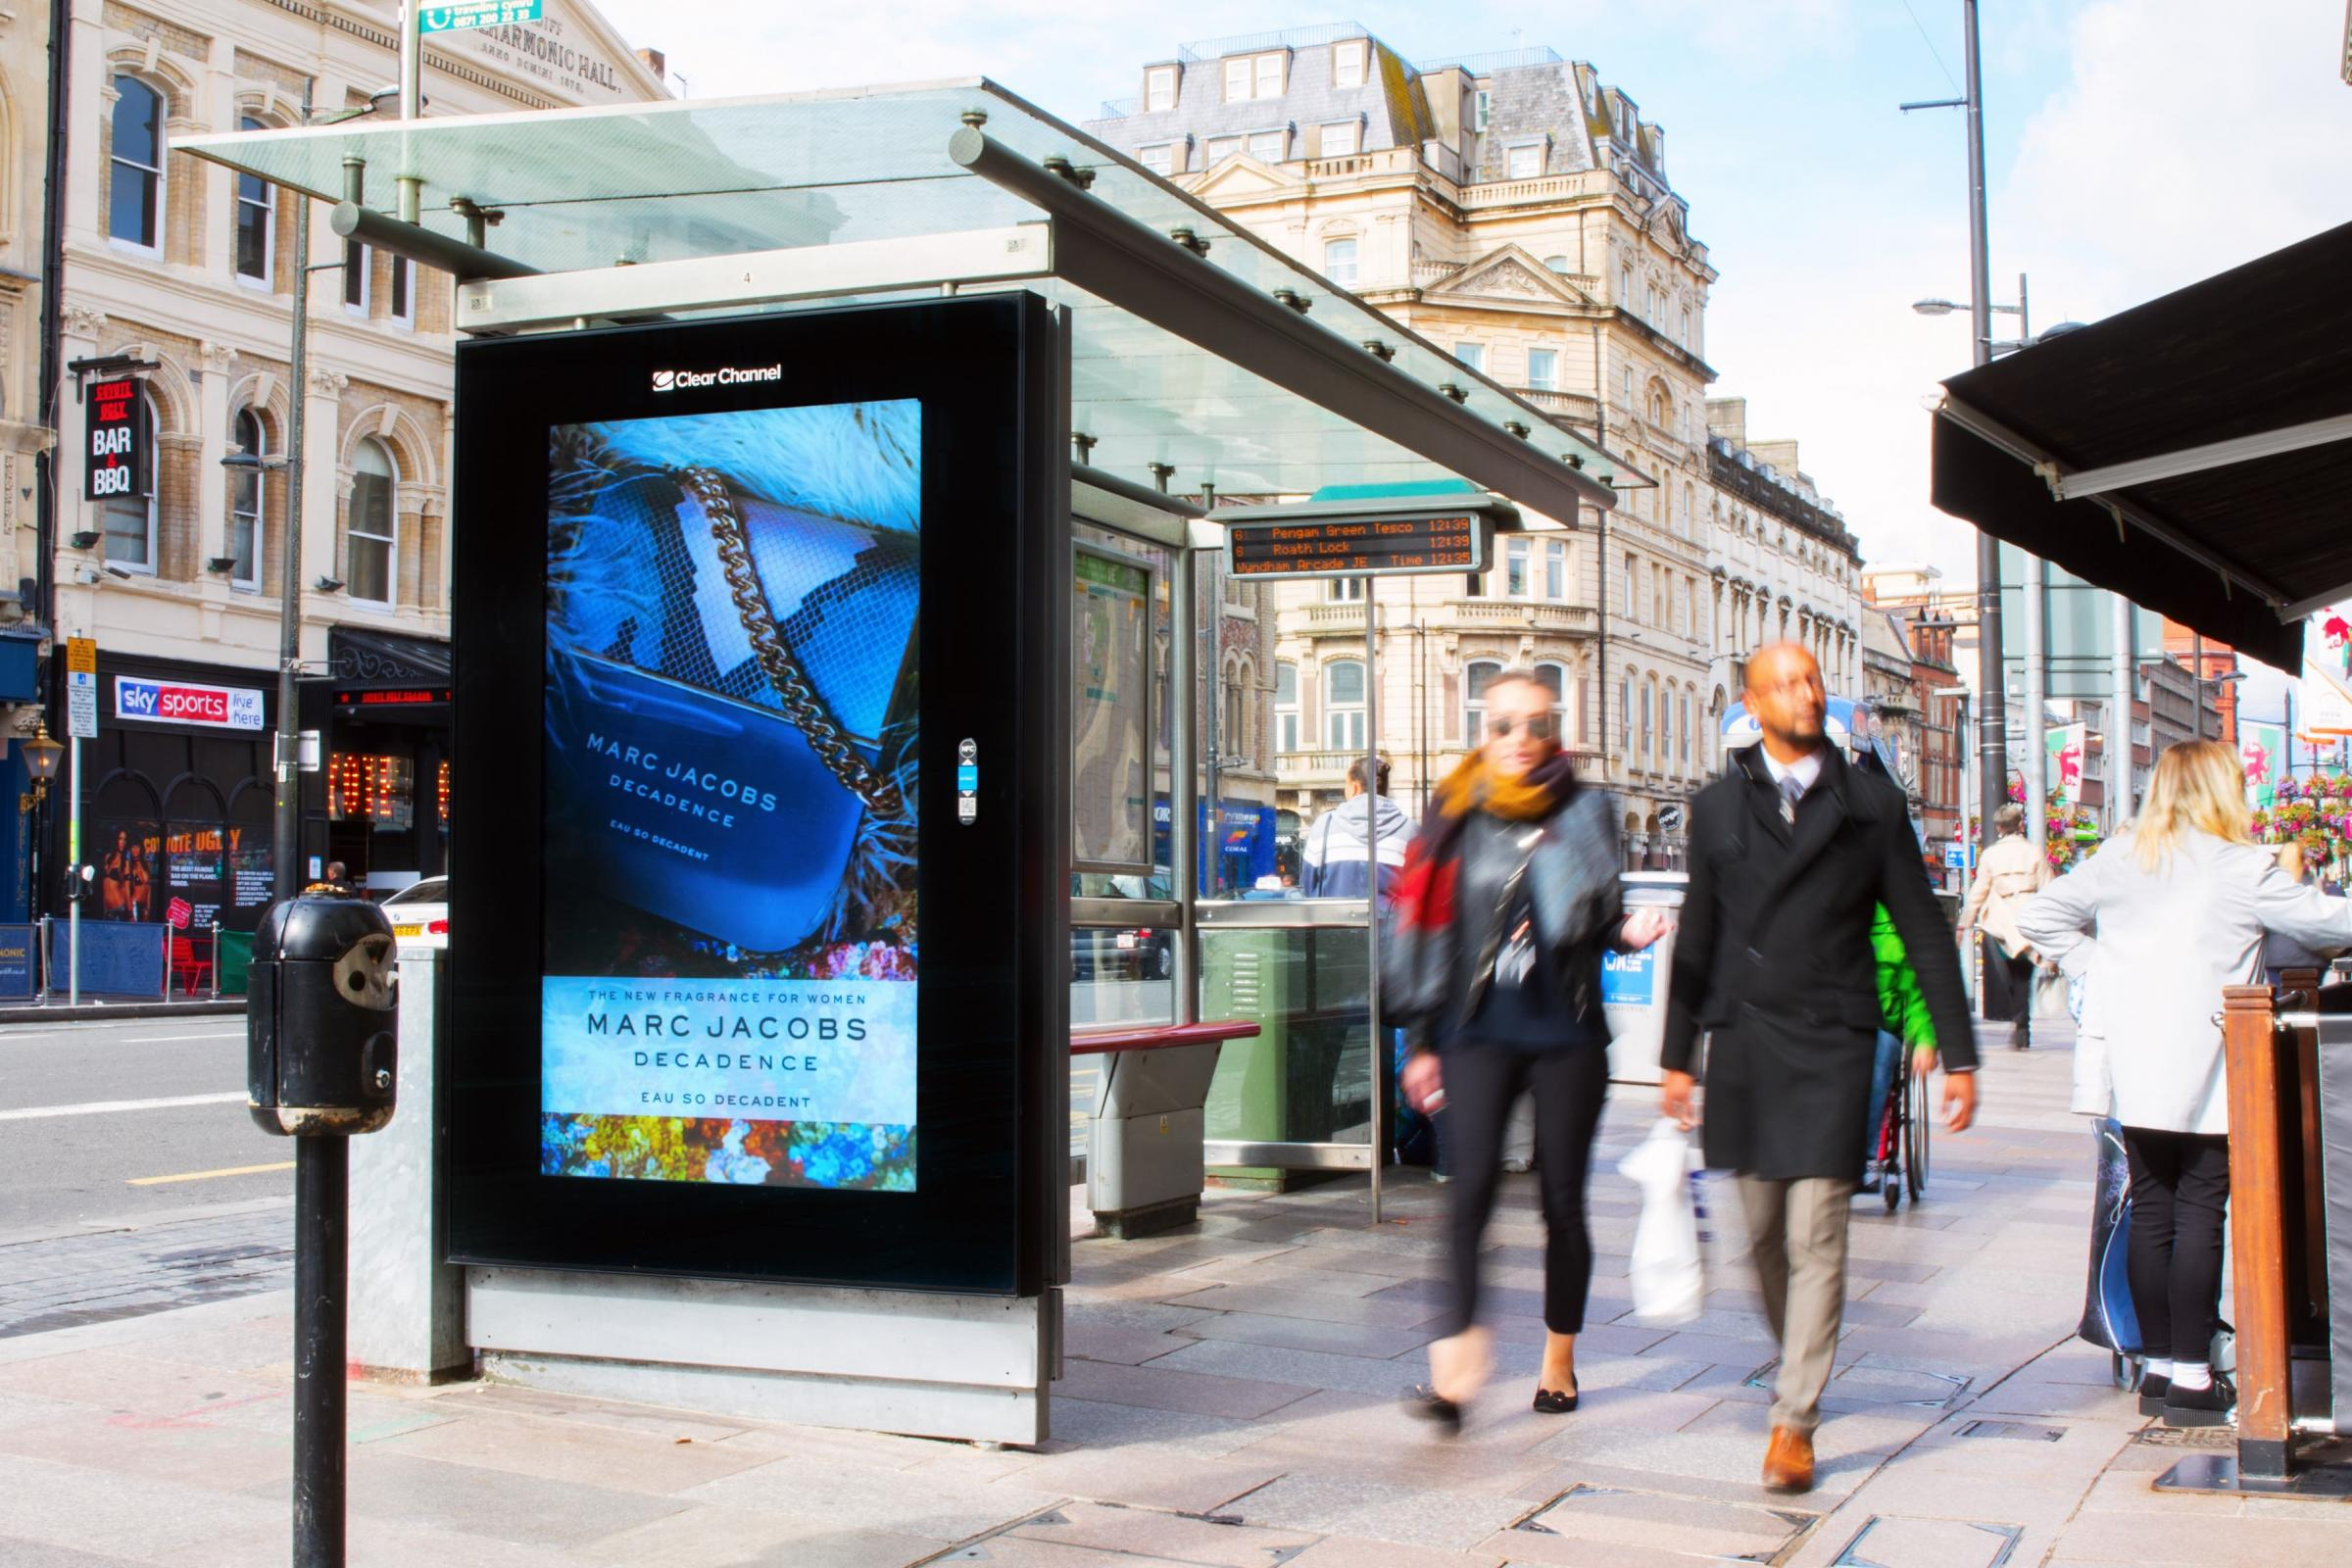 PRESENCE: Romag's deal with Amscreen will see it support the latter's digital signage endeavours